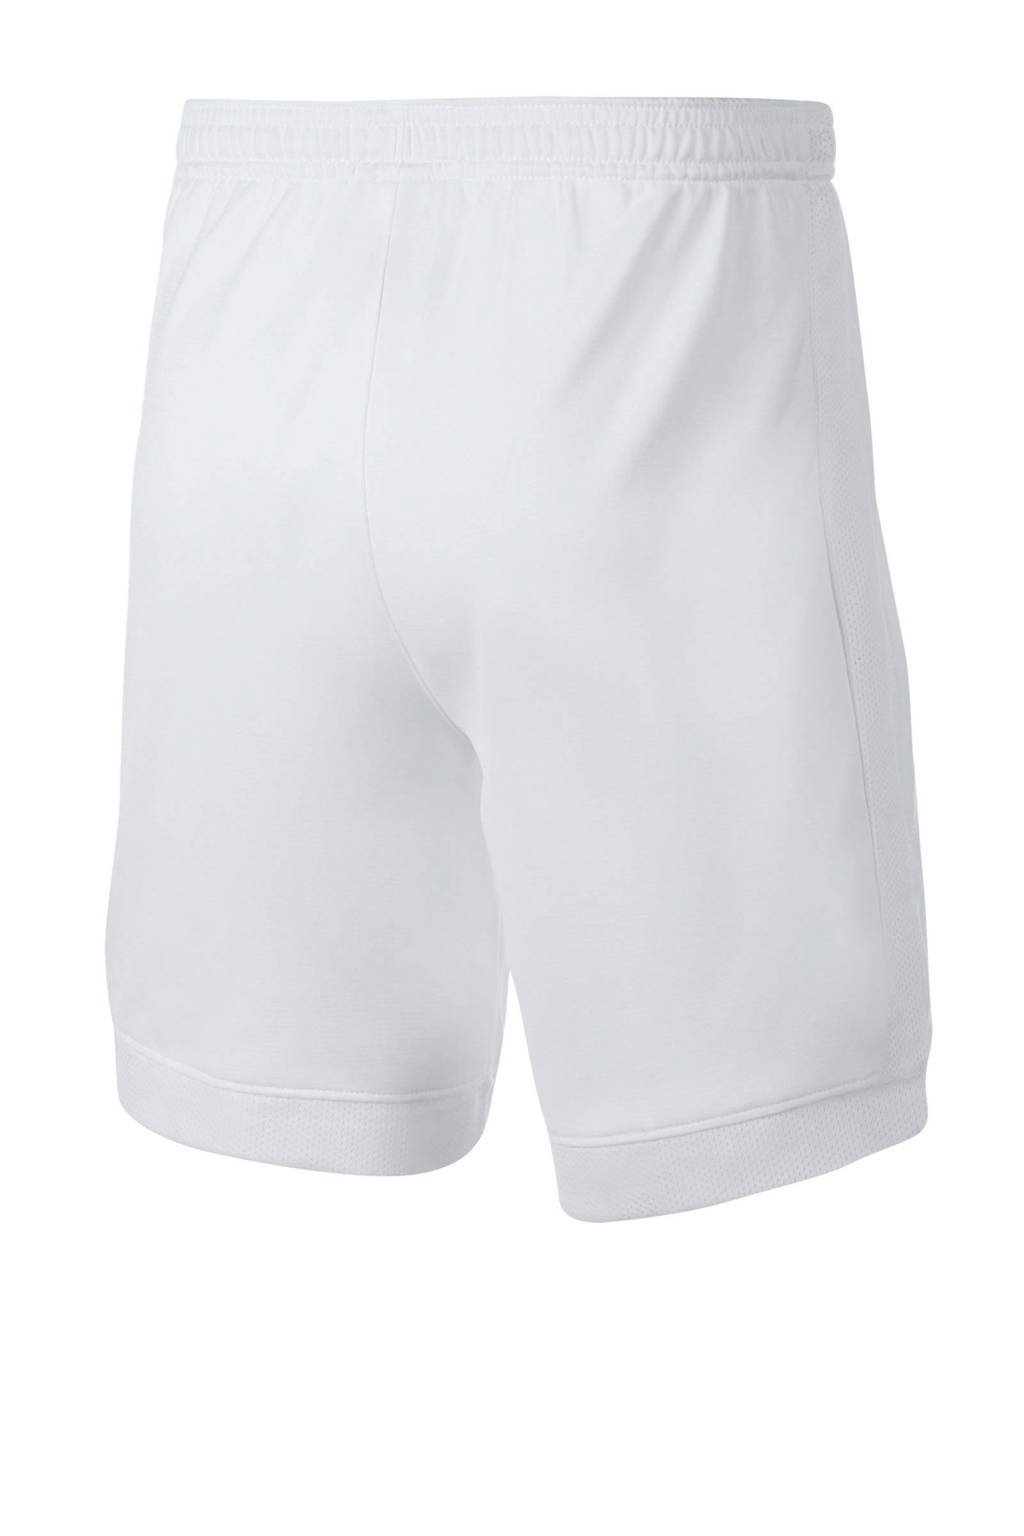 Nike Junior  voetbalshort wit, Wit